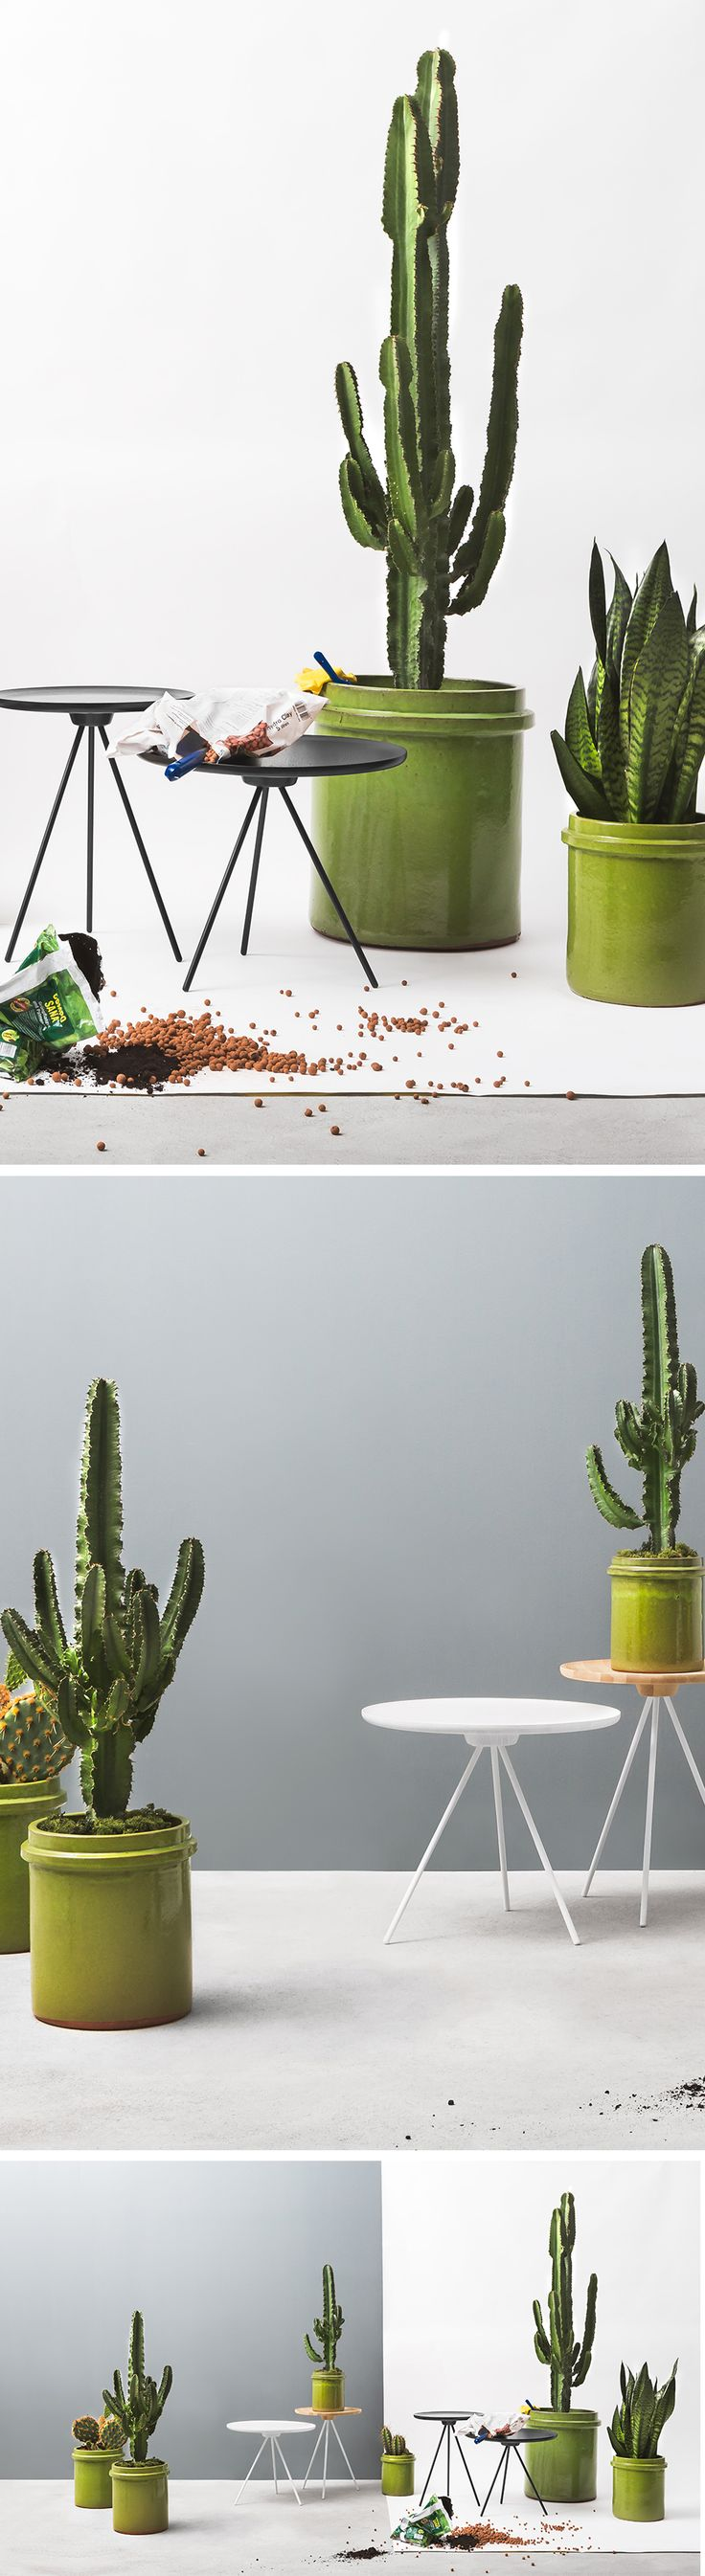 We don't expect you to bring the garden party inside, but use your imagination – get a little wild and let the unusual texture and organic shape of cacti take centre stage. Opposites attract, and that's why we love chaotic greenery with Key's clean, laid-back elegance – a sharp, characterful combination for any home. Key Tables designed by GamFratesi.